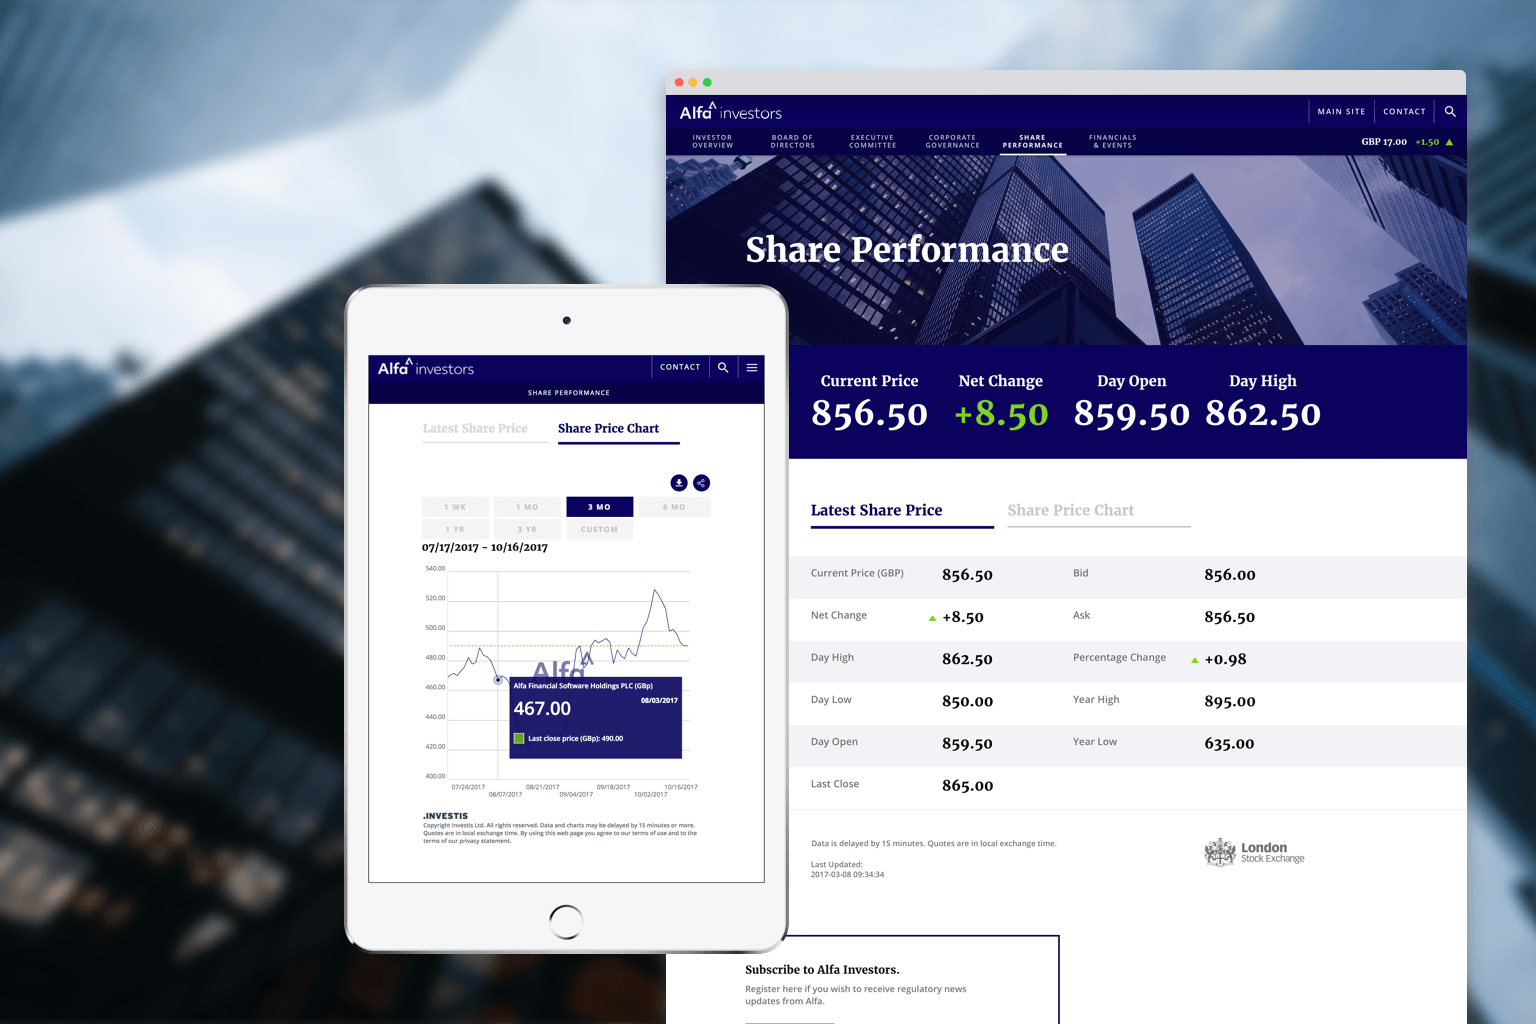 Alfa Investor Relations share performance tablet page